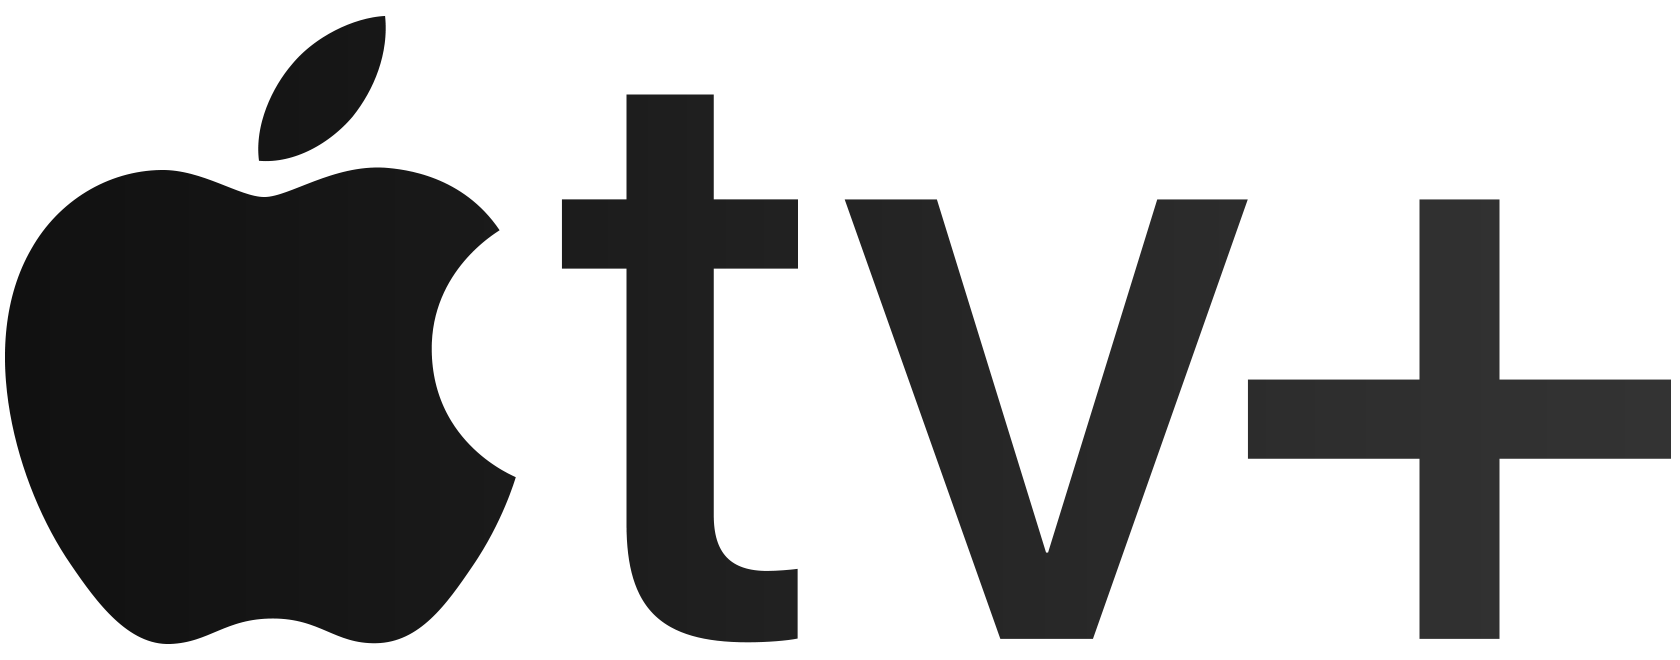 File:Apple TV+ logo.png - Wikimedia Commons